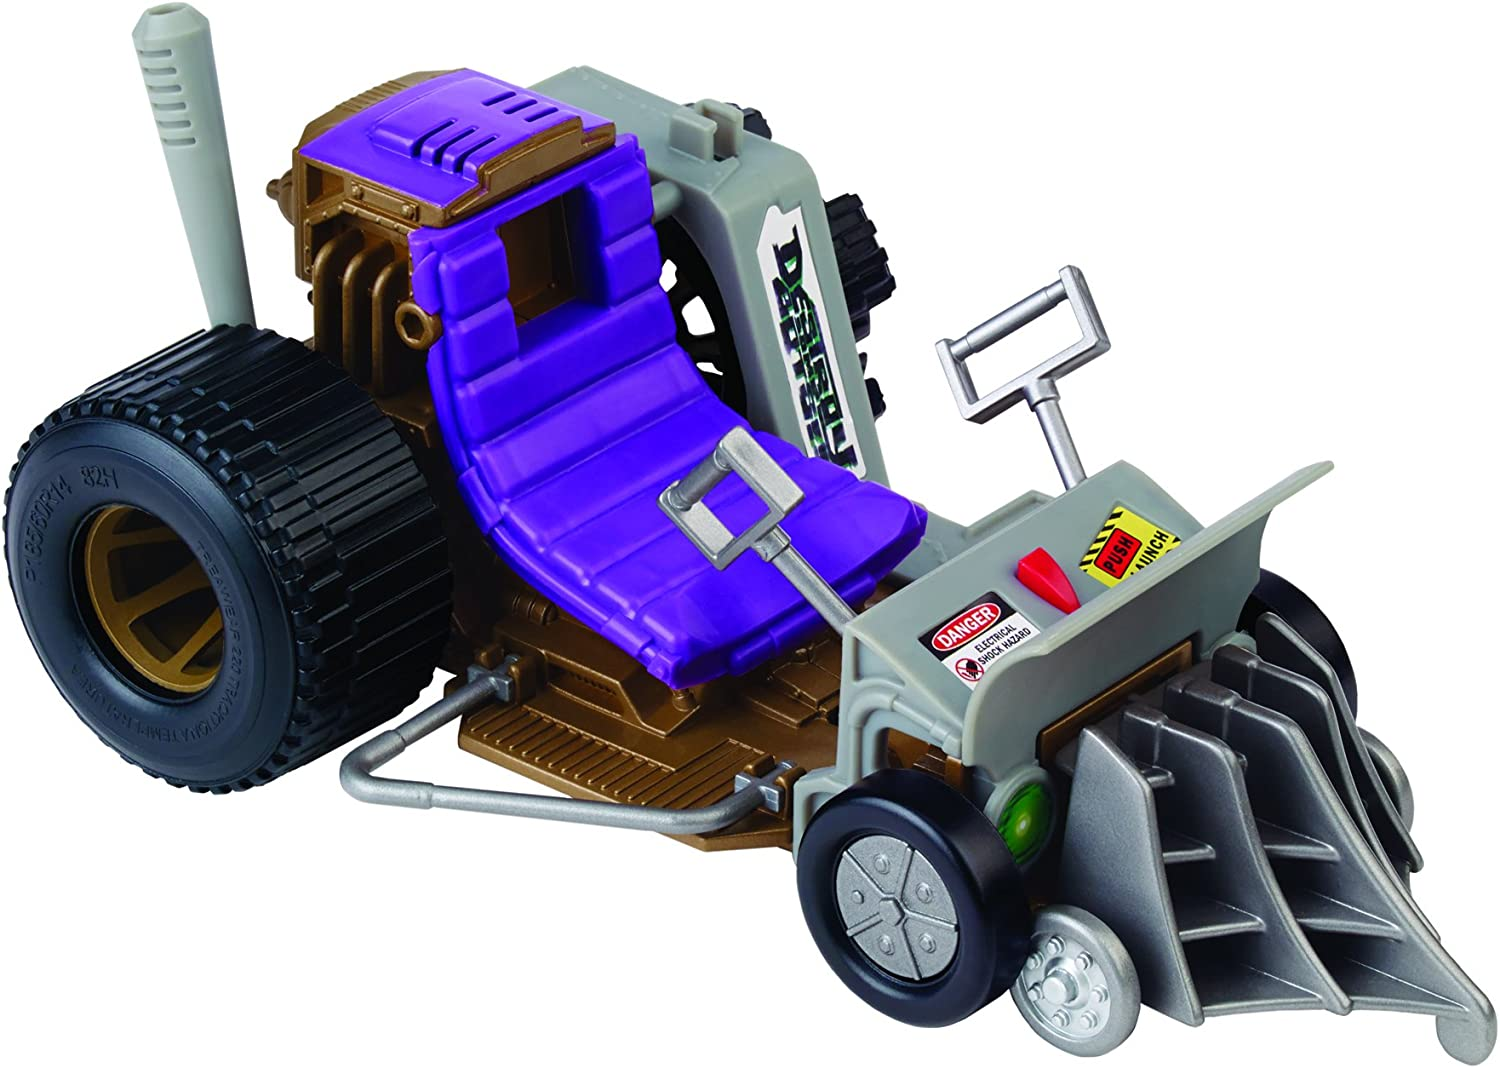 Teenage Mutant Ninja Turtles Donatello's Patrol Buggy Vehicle